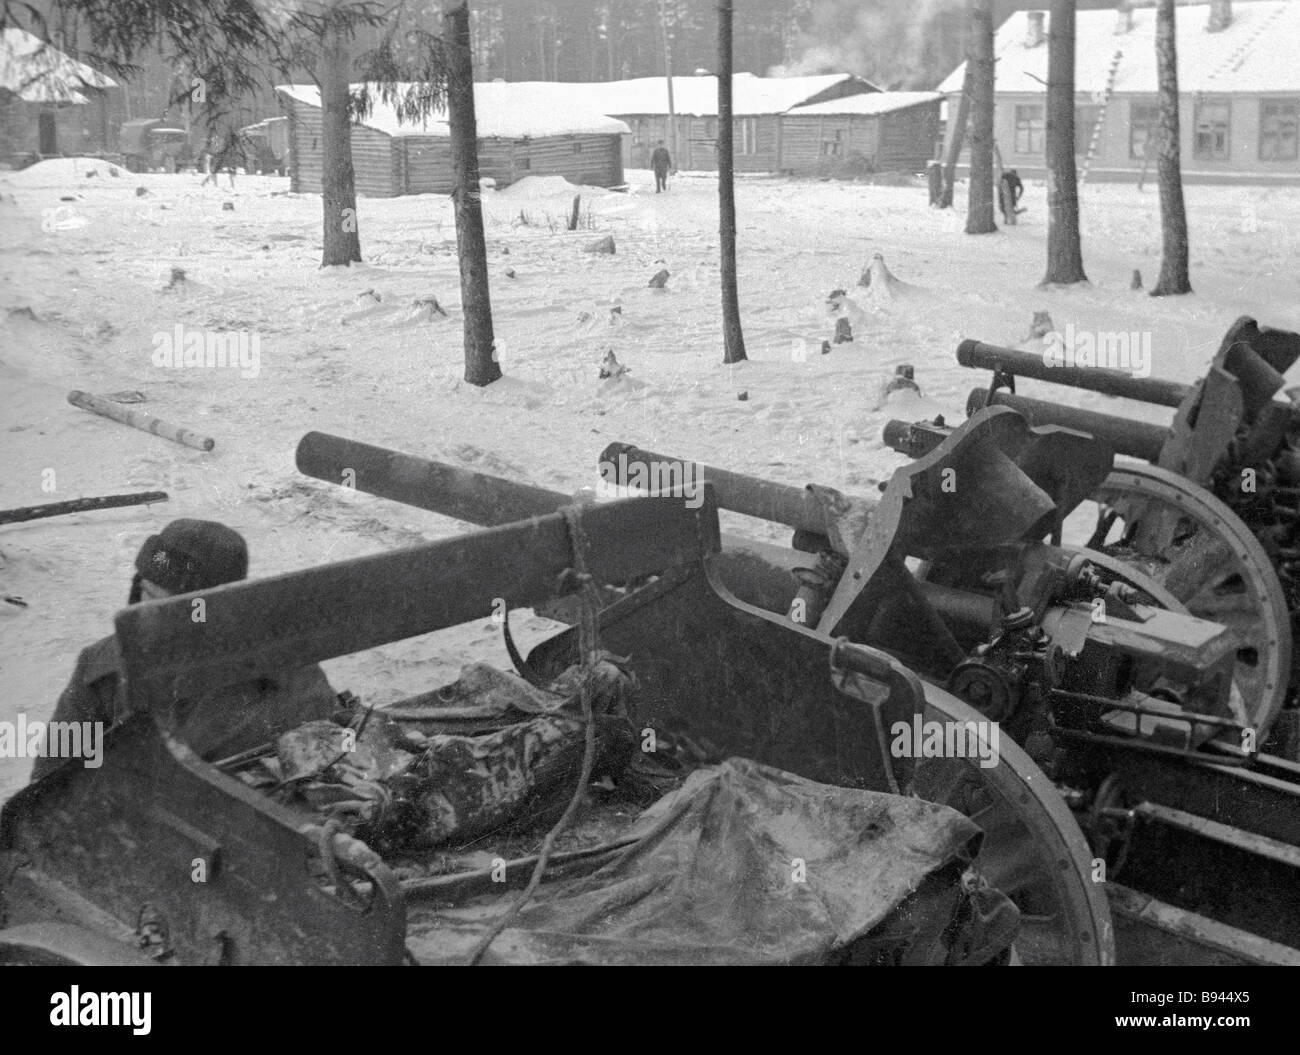 Soviet weaponry in Solnechnogorsk liberated from Nazi occupation during WWII - Stock Image